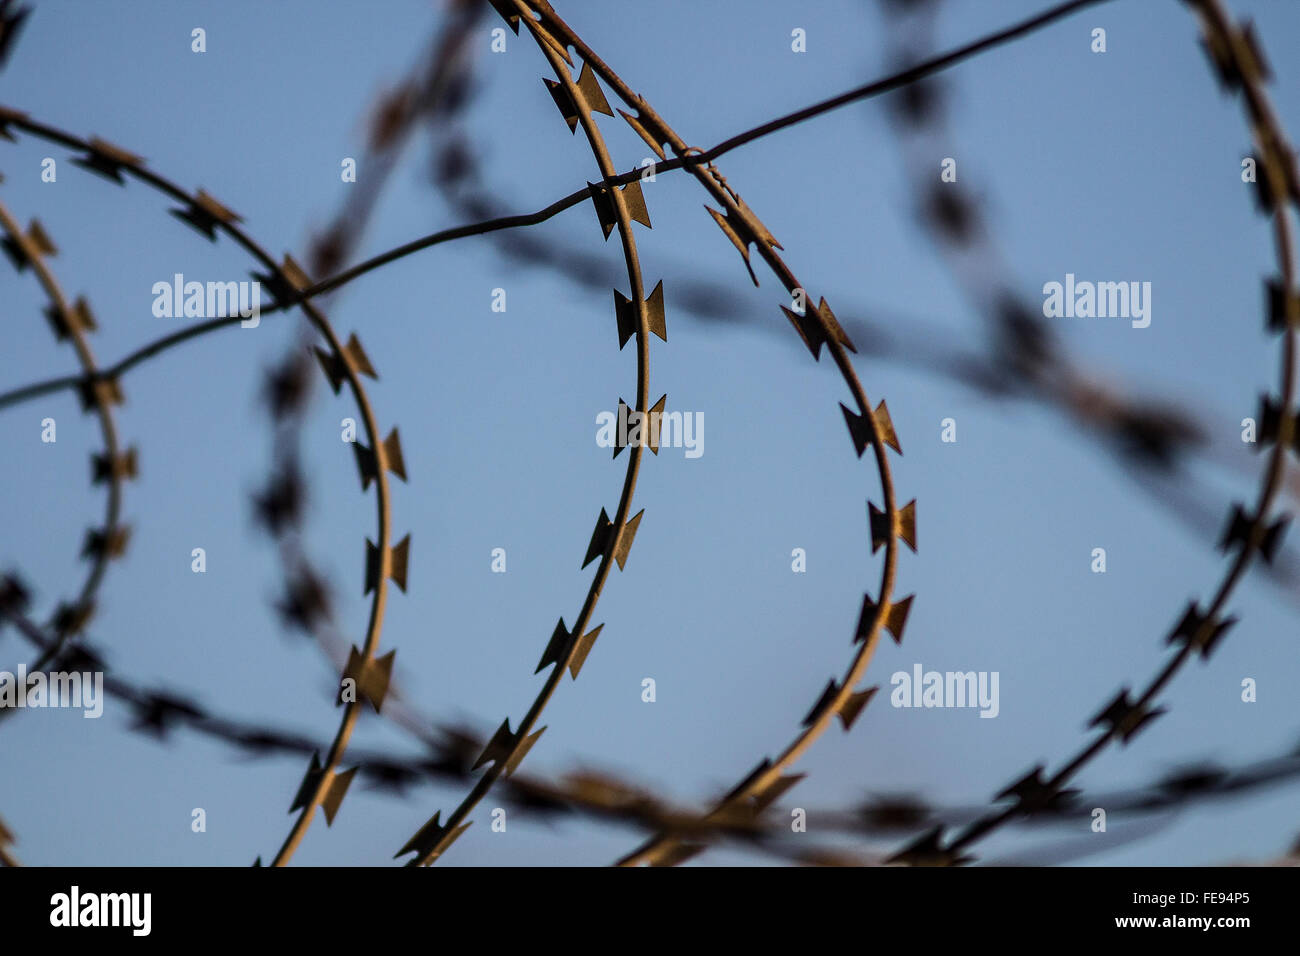 Razor wire against a light blue sky - Stock Image